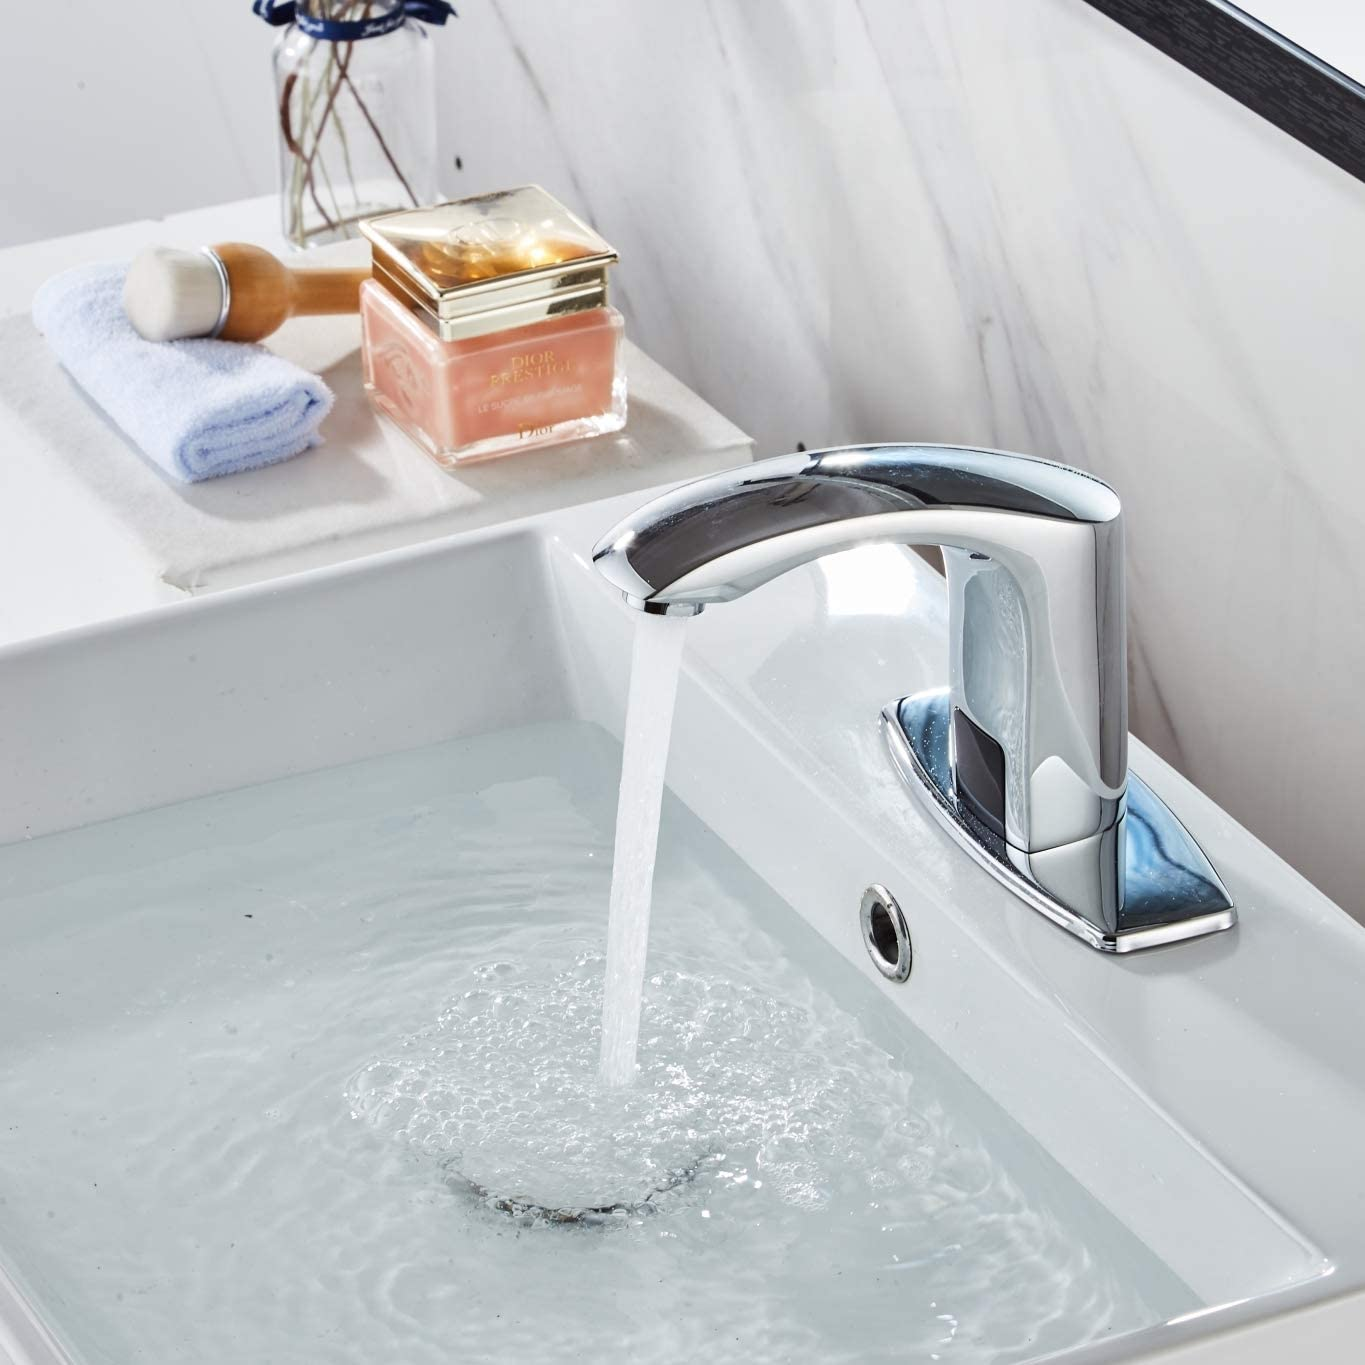 Buy Luxice Sensor Automatic Touchless Bathroom Sink Faucet Hot Cold Mixer Cover Plate Included Faucet Chrome Finished Online In Vietnam B087cdrr8m